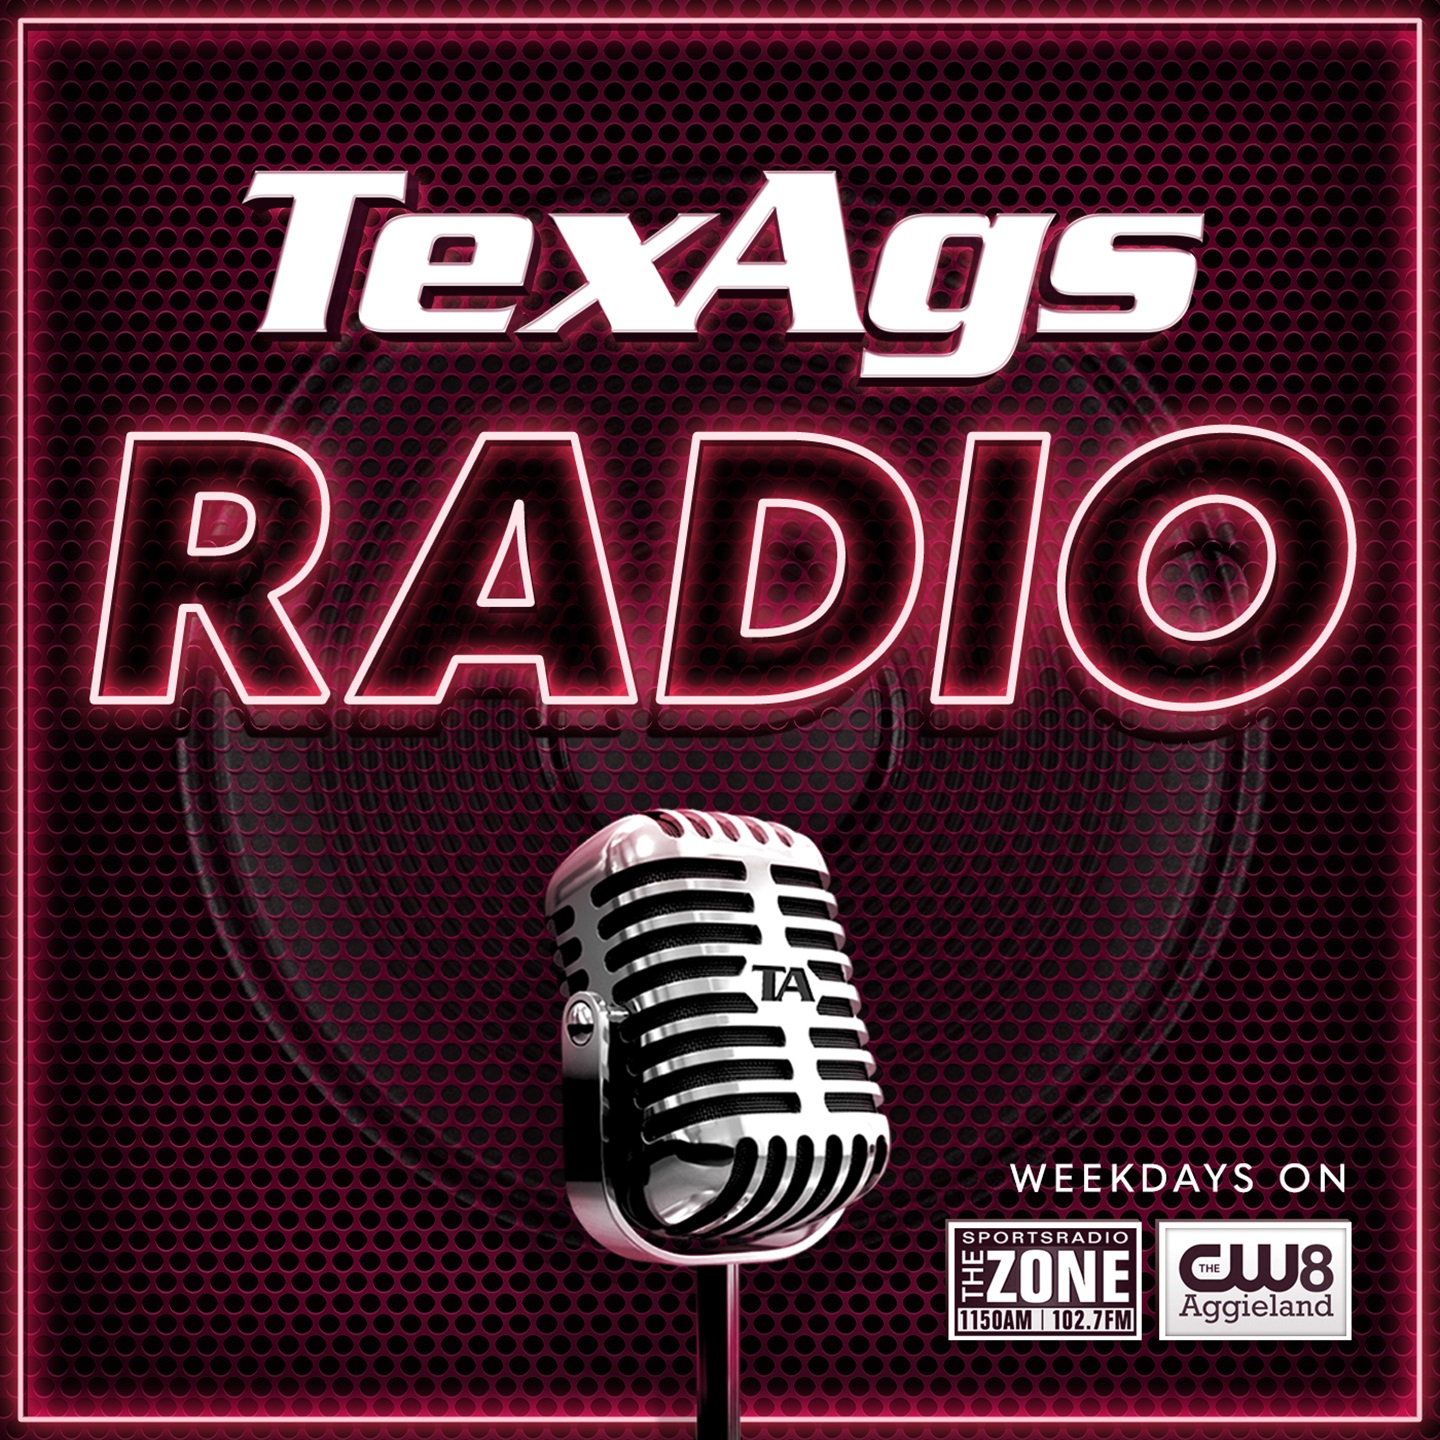 TexAgs Radio: Monday (9/30) full show